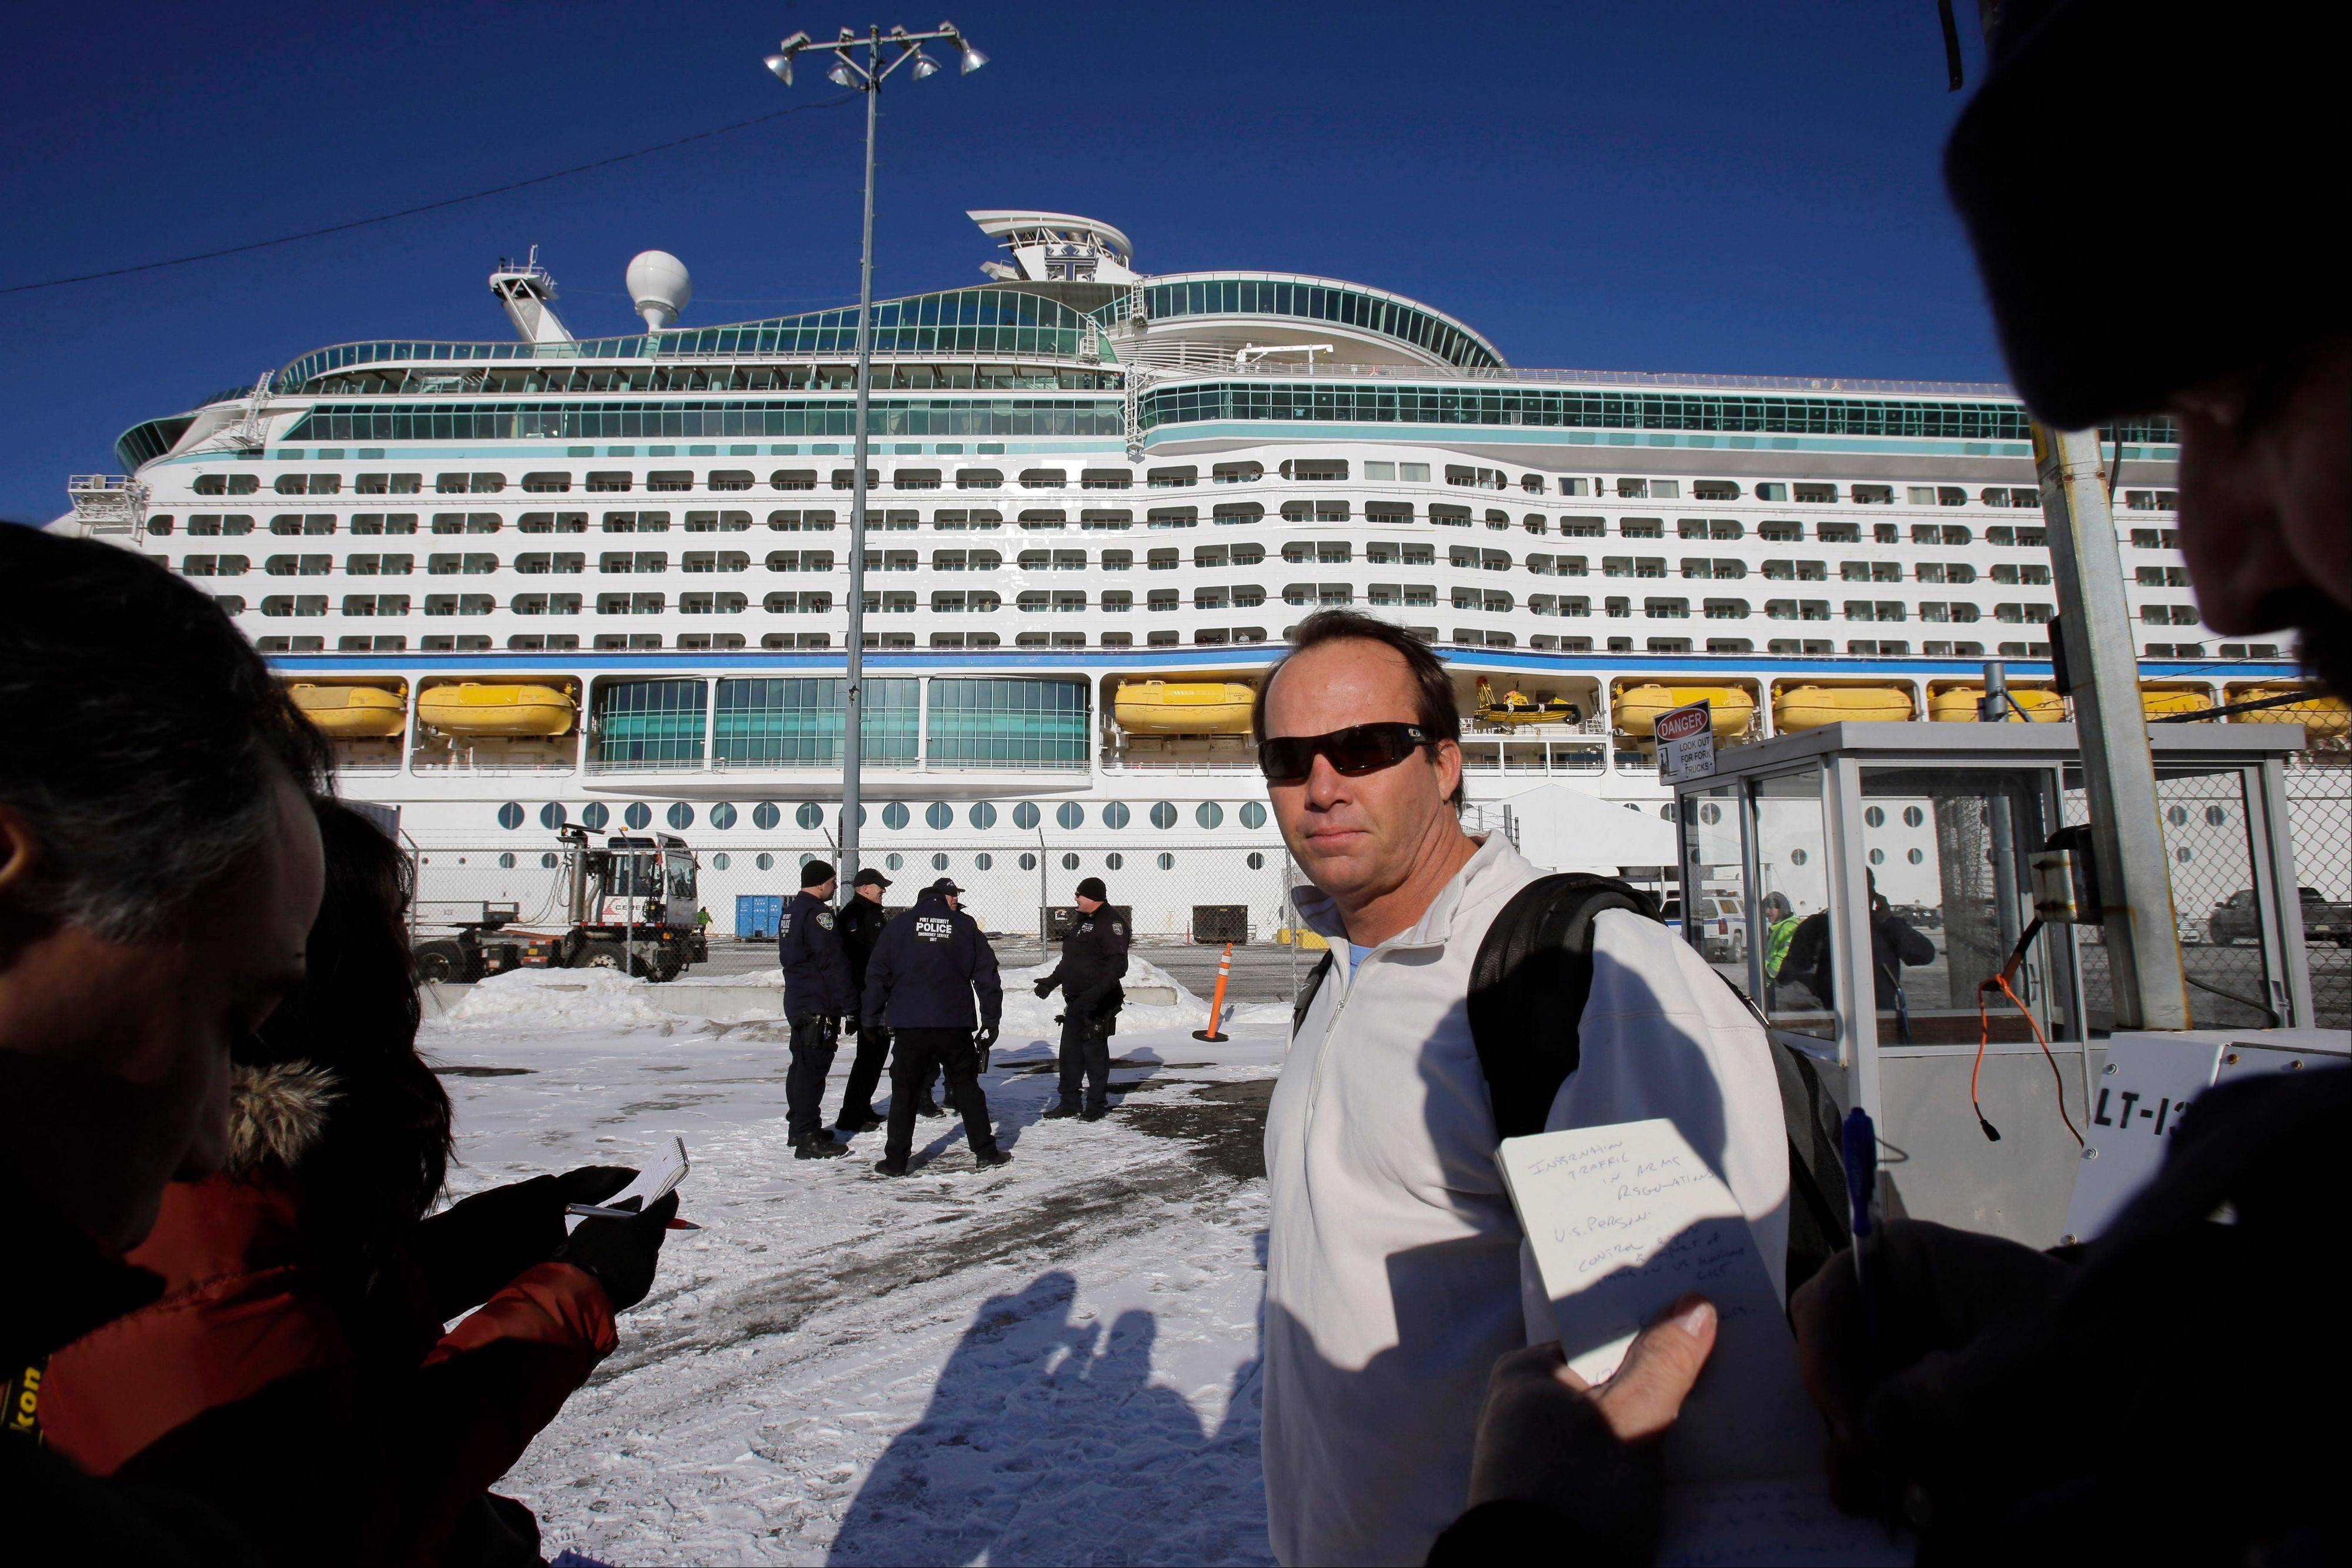 Rick O�Shea, with the Explorer of the Seas cruise ship behind him after it docked in Bayonne, N.J., Wednesday, said his company is preparing to disinfect the ship. The U.S. Centers for Disease Control and Prevention said Wednesday its latest count puts the number of those sickened aboard the Explorer of the Seas at 630 passengers and 54 crew members.